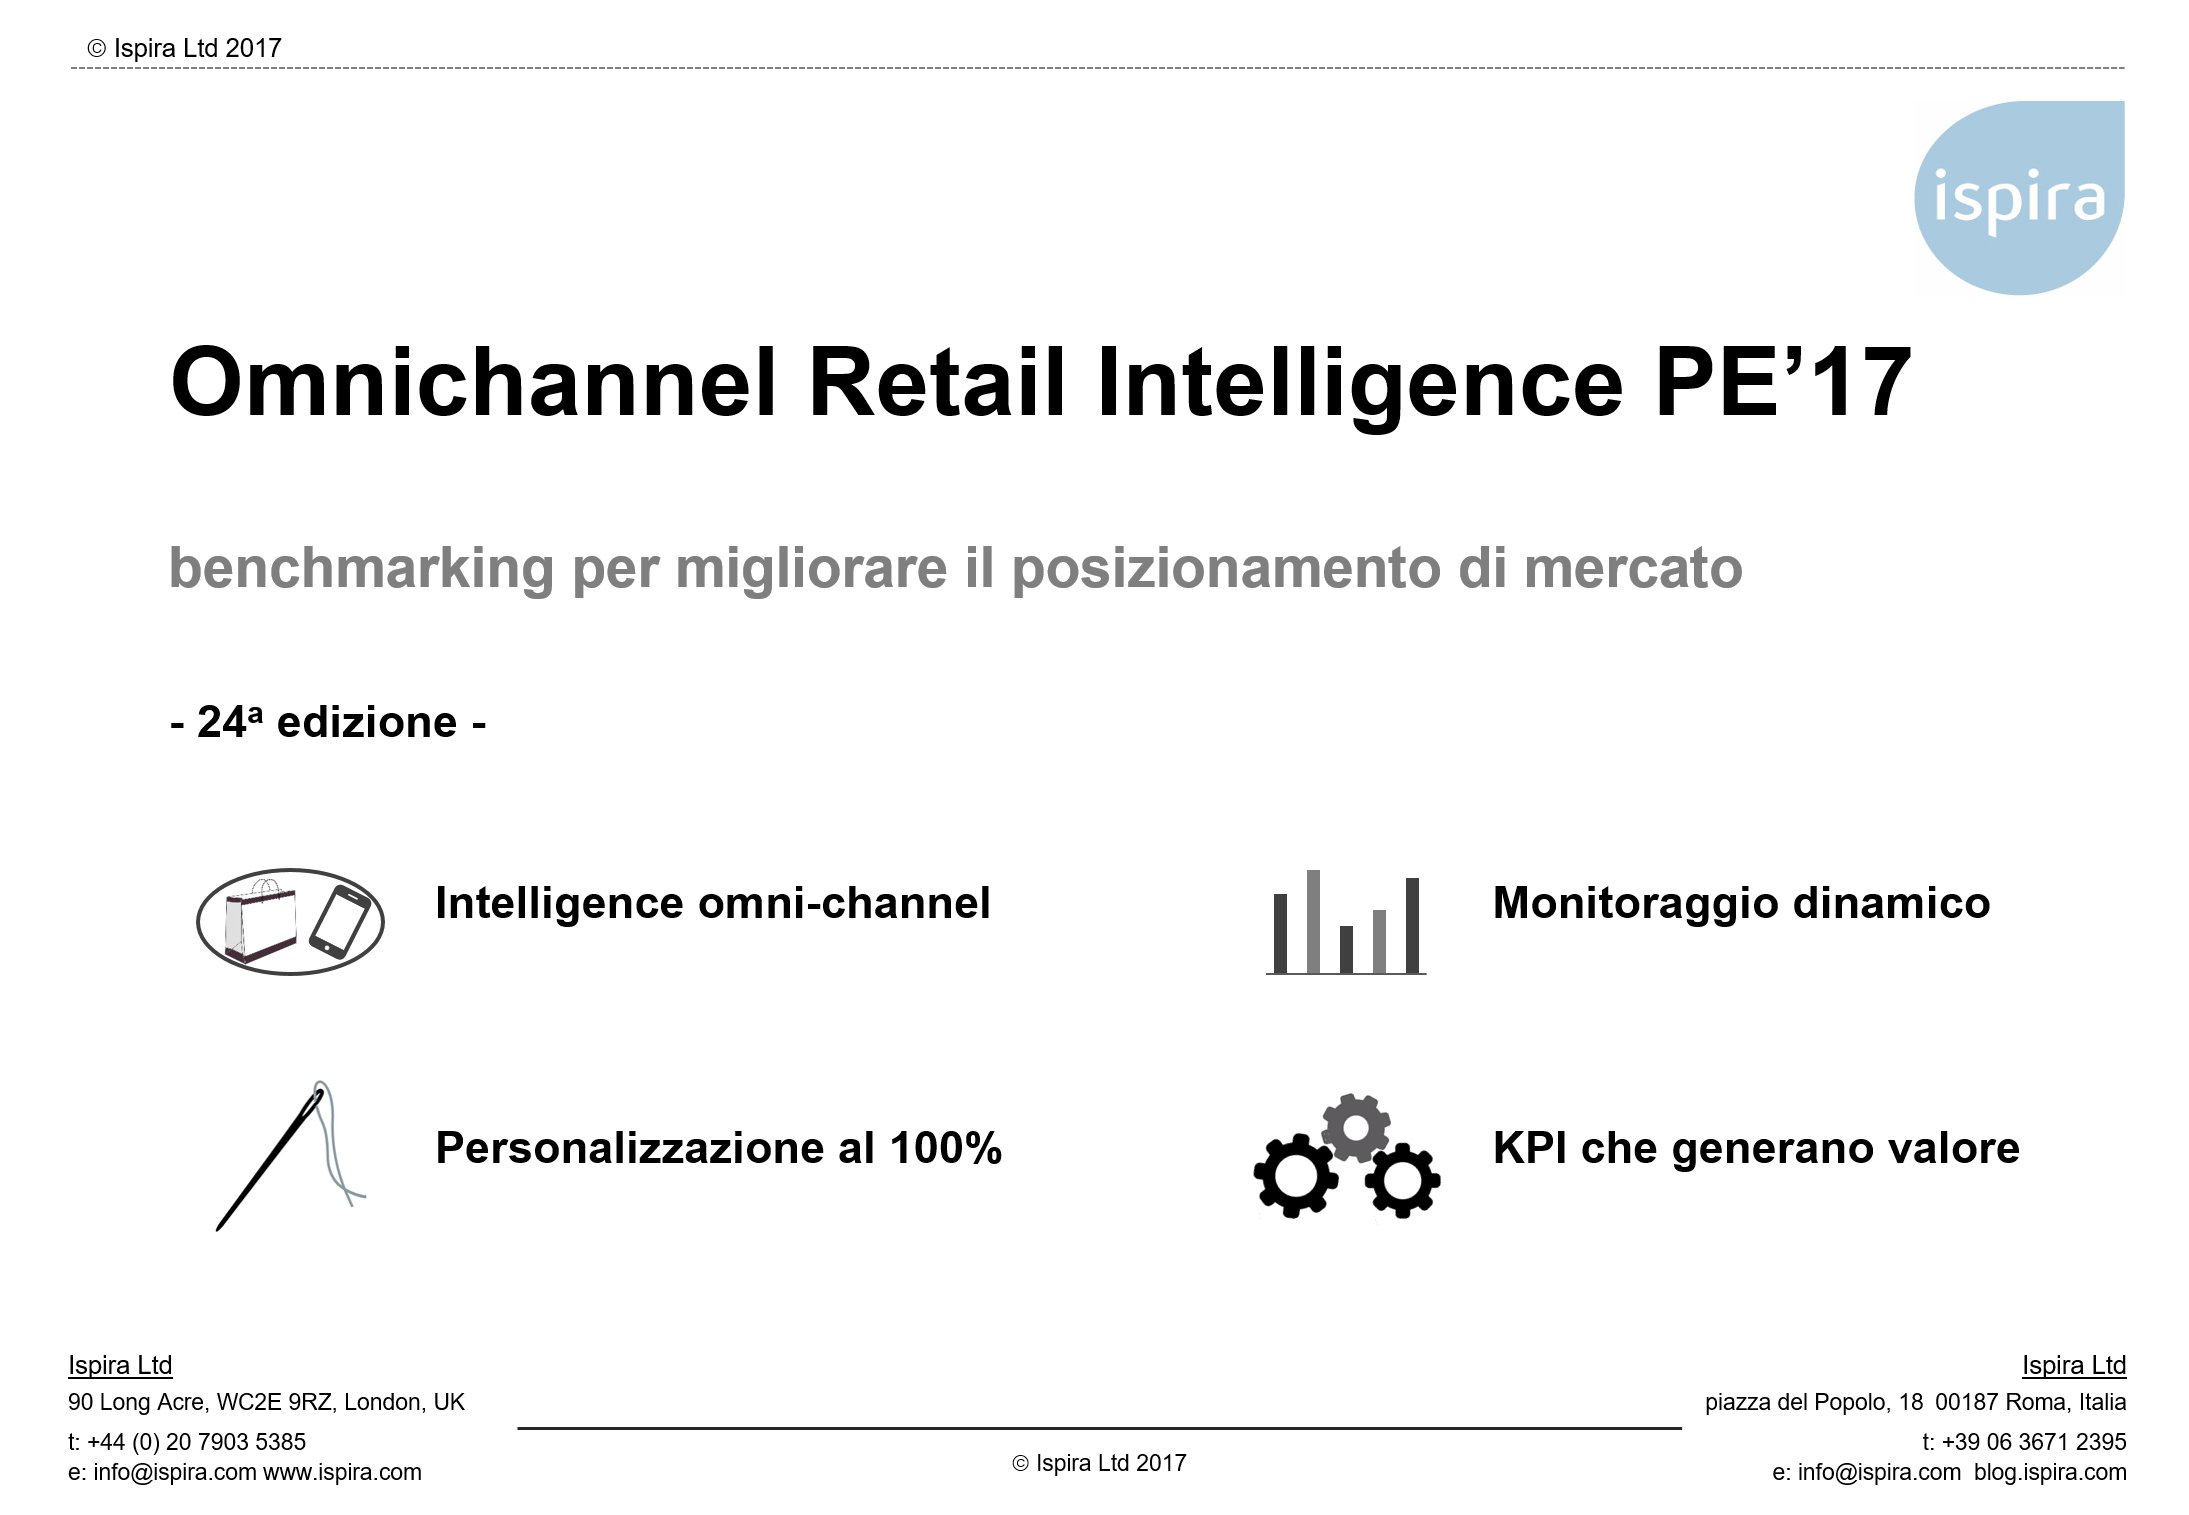 Omnichannel Retail Intelligence PE'17 - Ispira Ltd